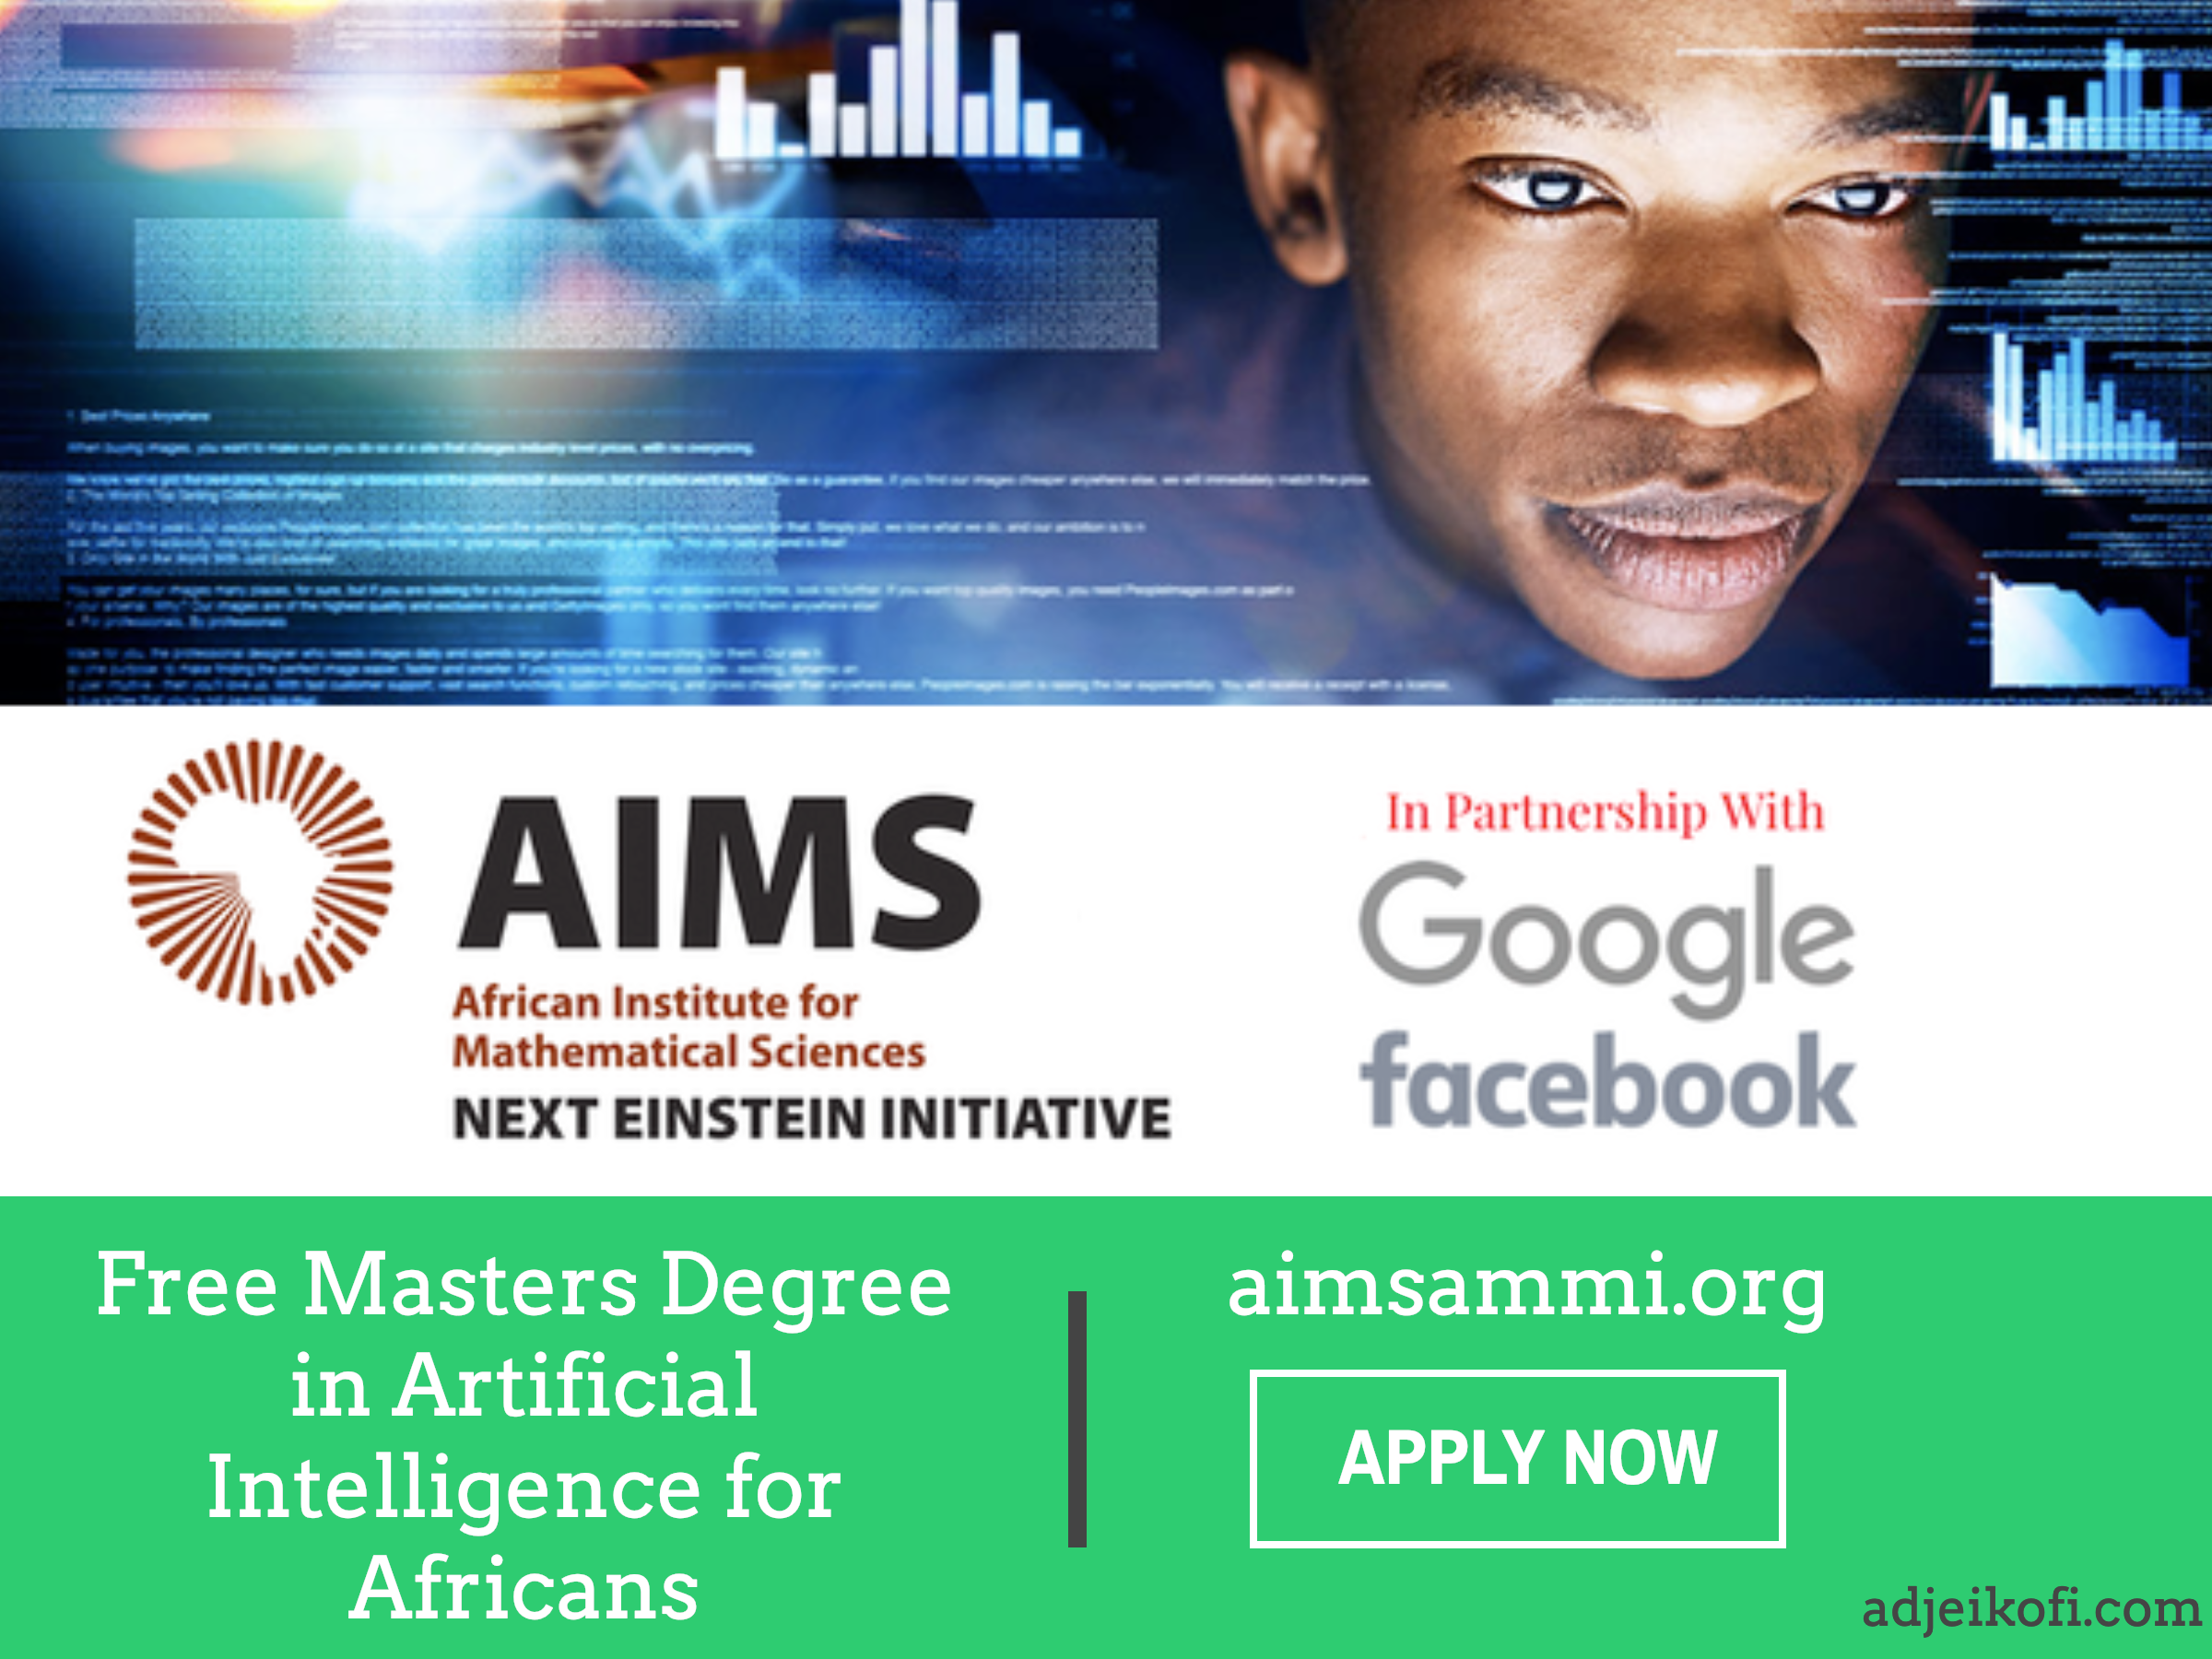 Free Masters Degree in Artificial Intelligence